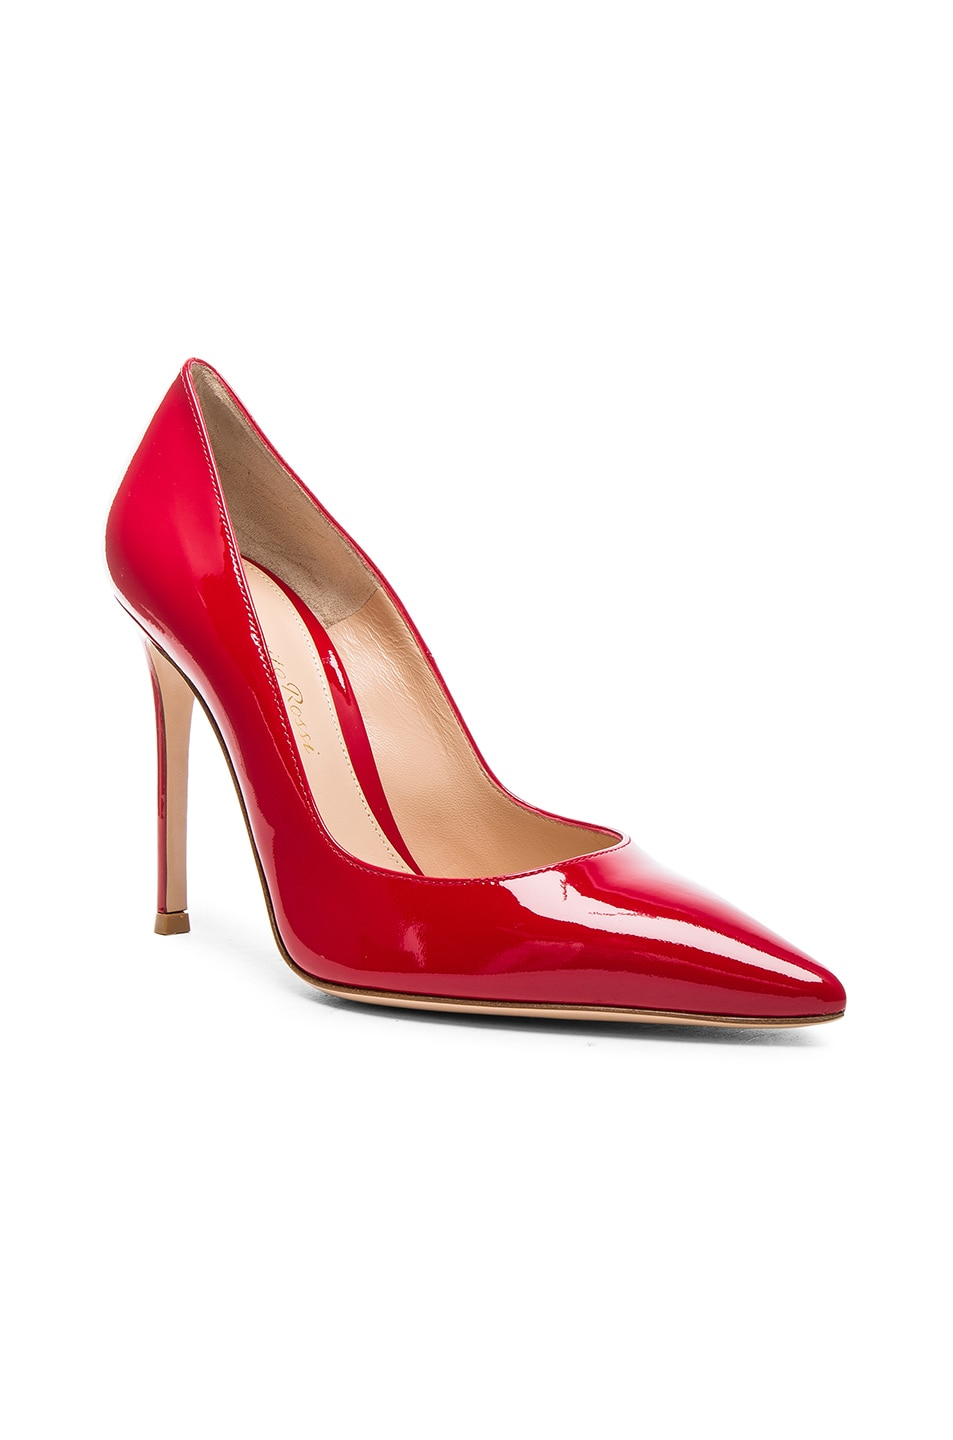 Image 2 of Gianvito Rossi Patent Leather Gianvito Pumps in Tabasco Red